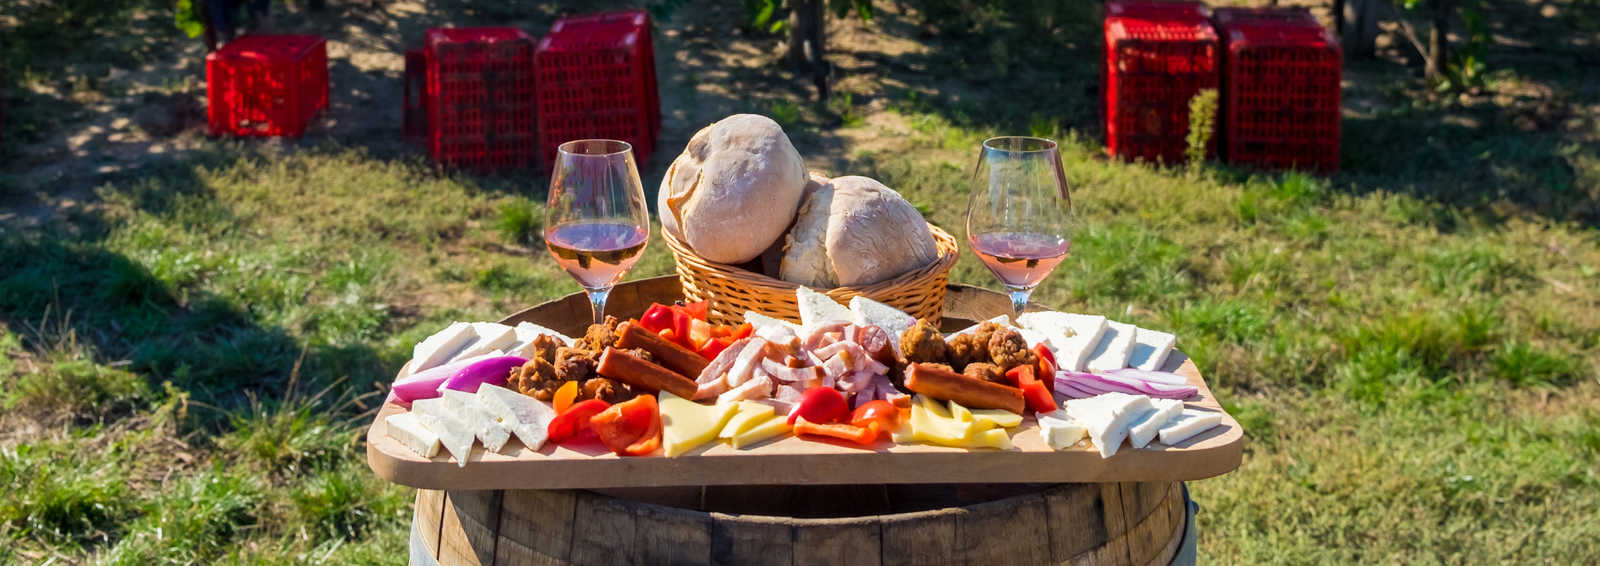 Harvesting season traditional Romanian food plate with cheese, bread, sausages, onions and red wine in glass in vineyards, on barrel